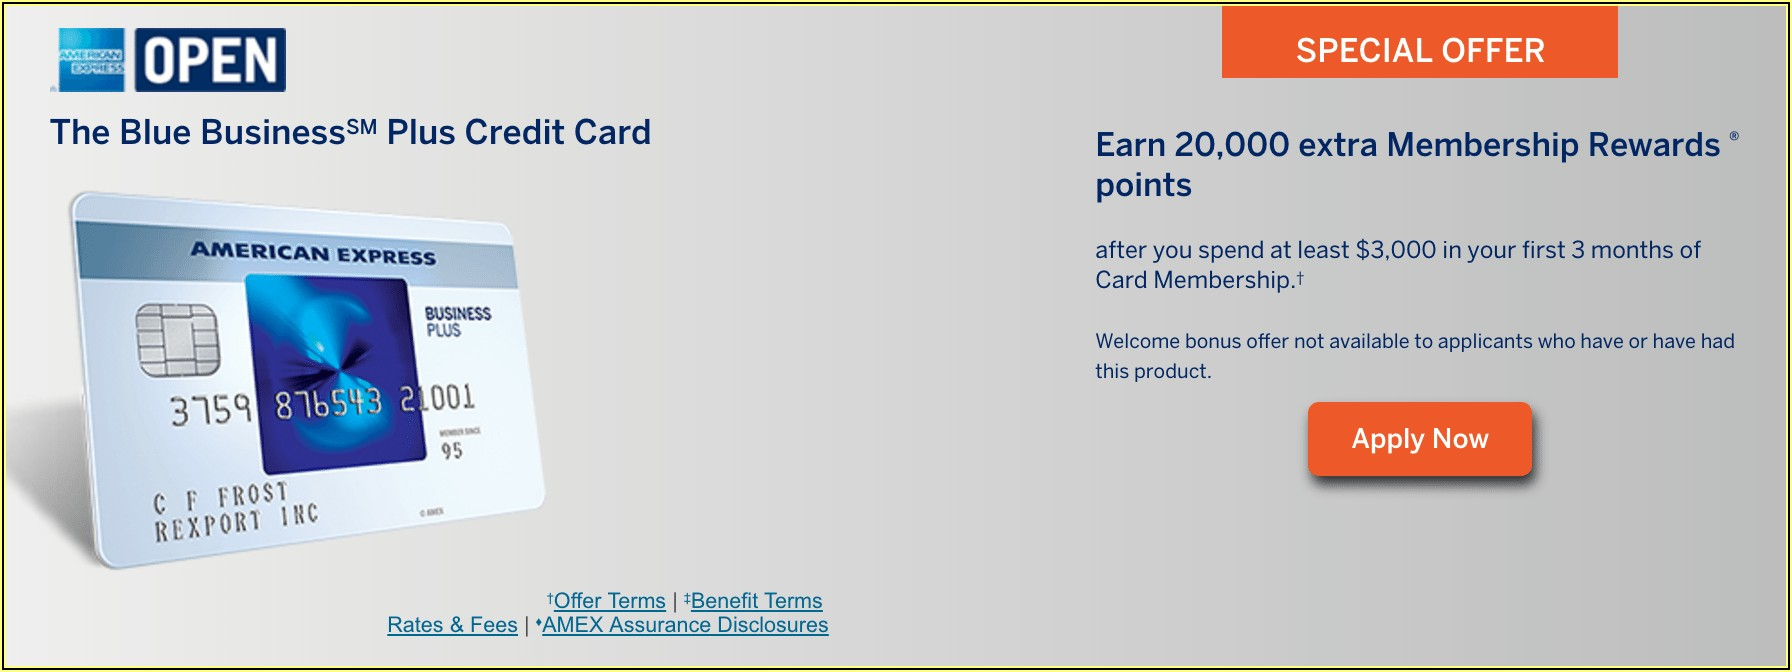 American Express Business Plus Card Benefits